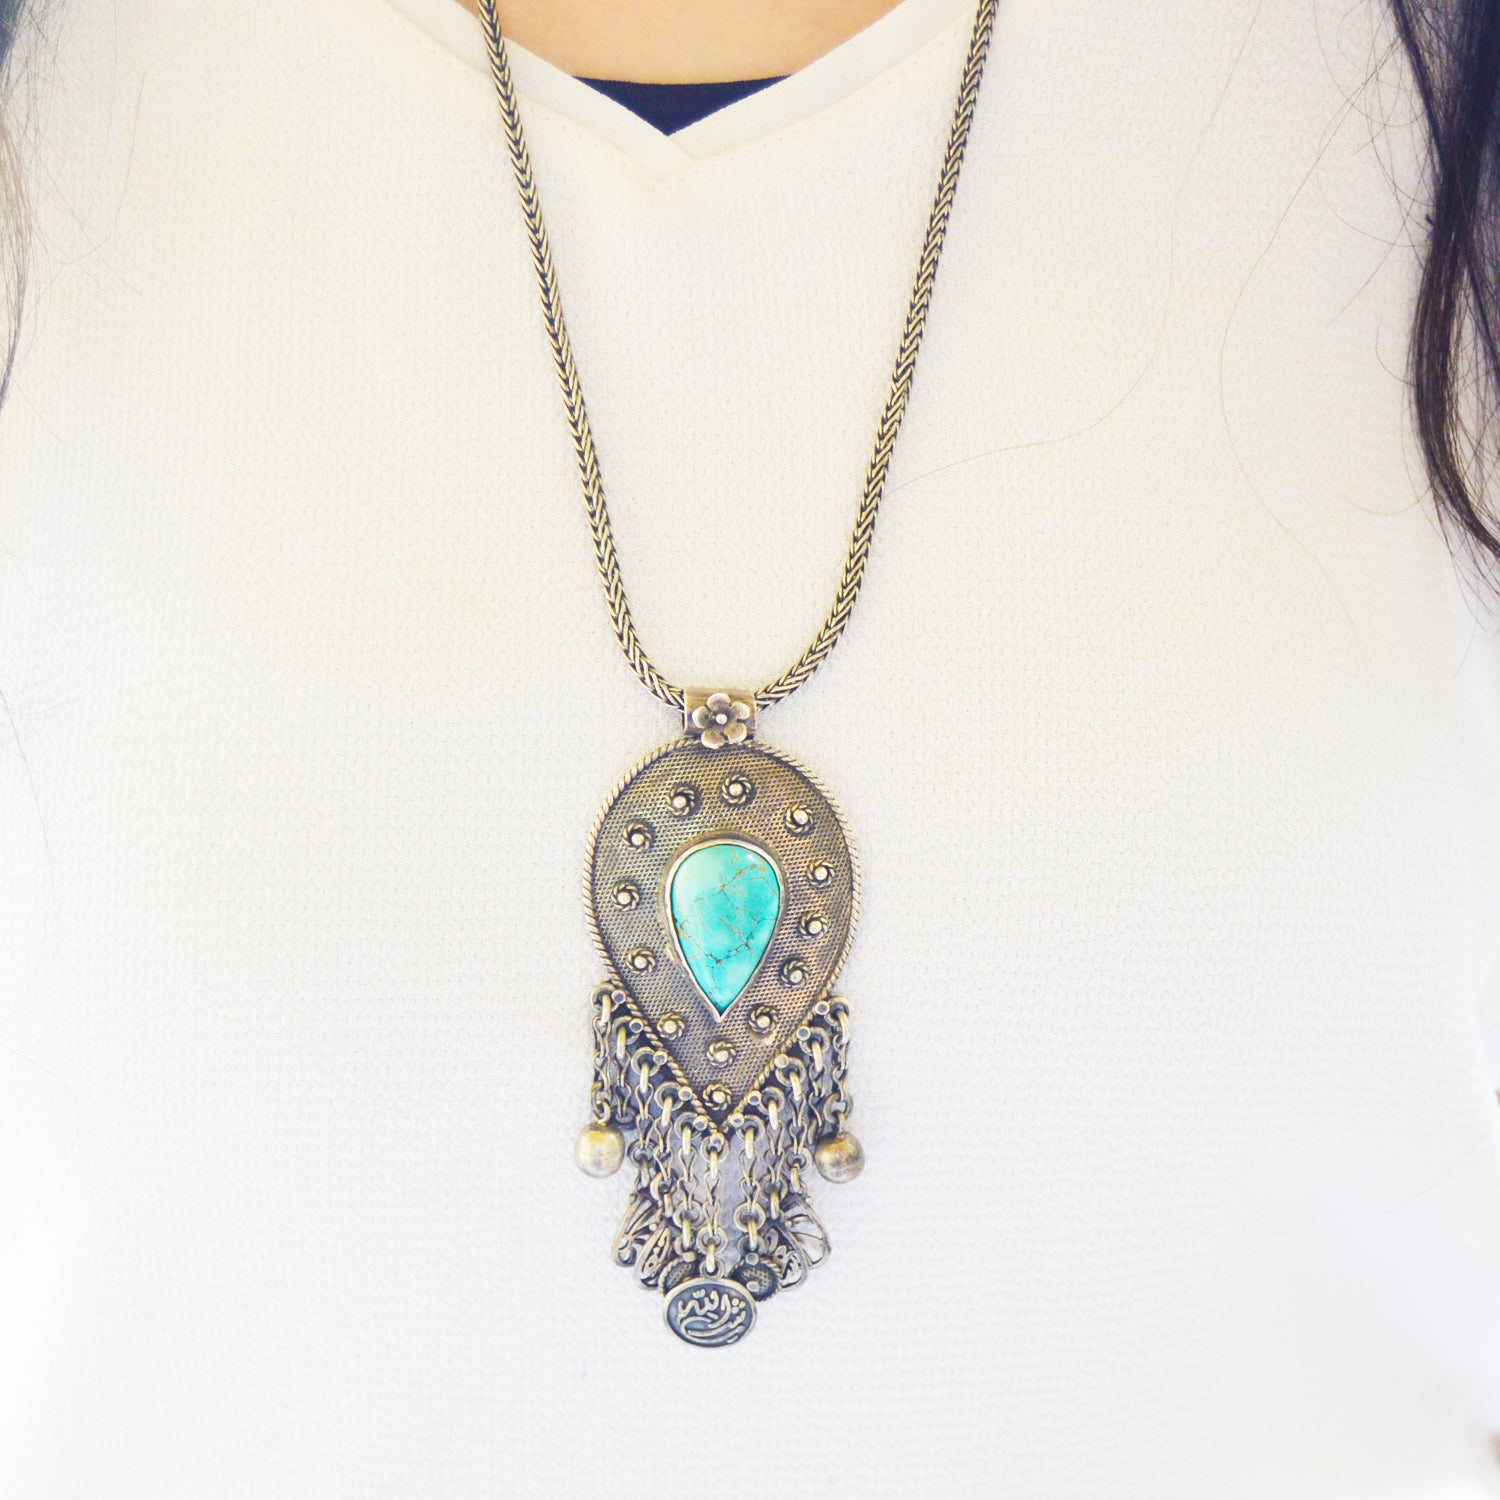 Turquoise Arabian Silver Necklace